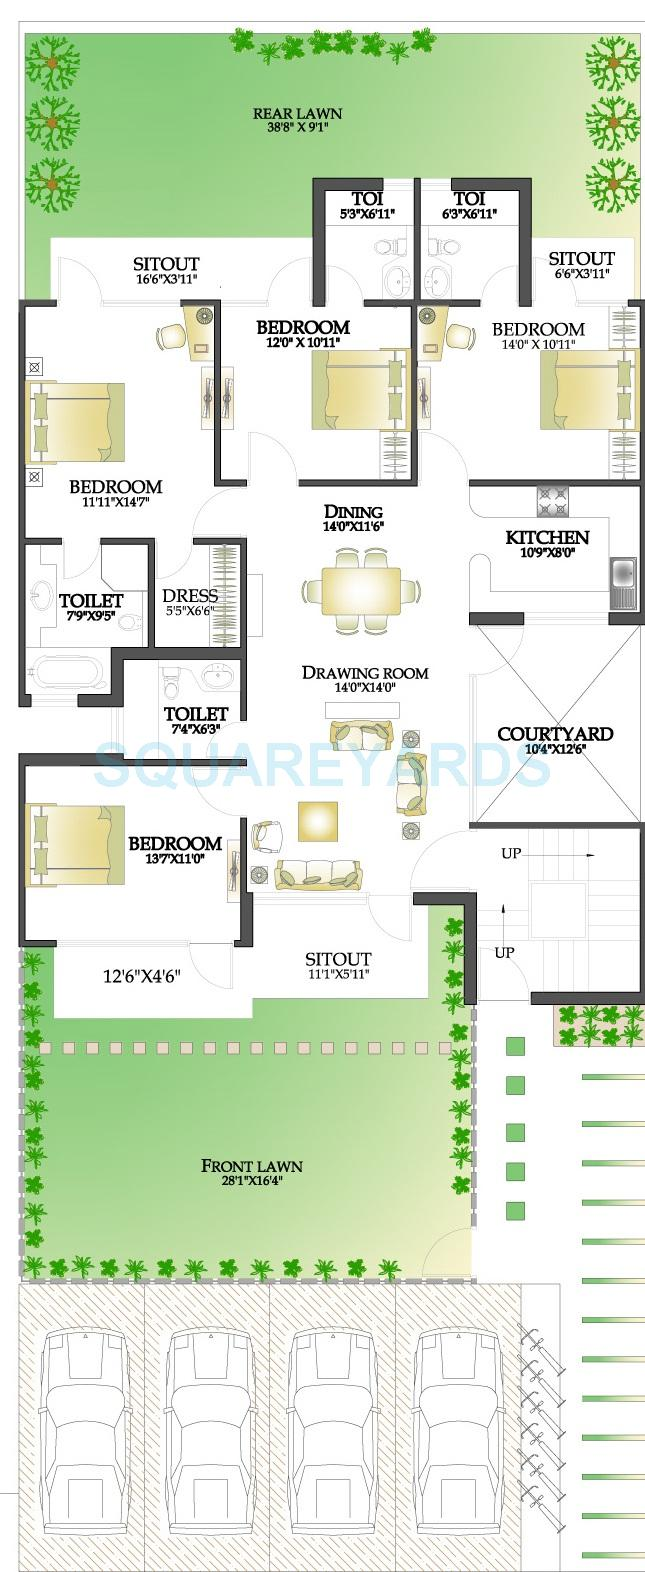 rps palms independent floor gf 4bhk 1805sqft 1